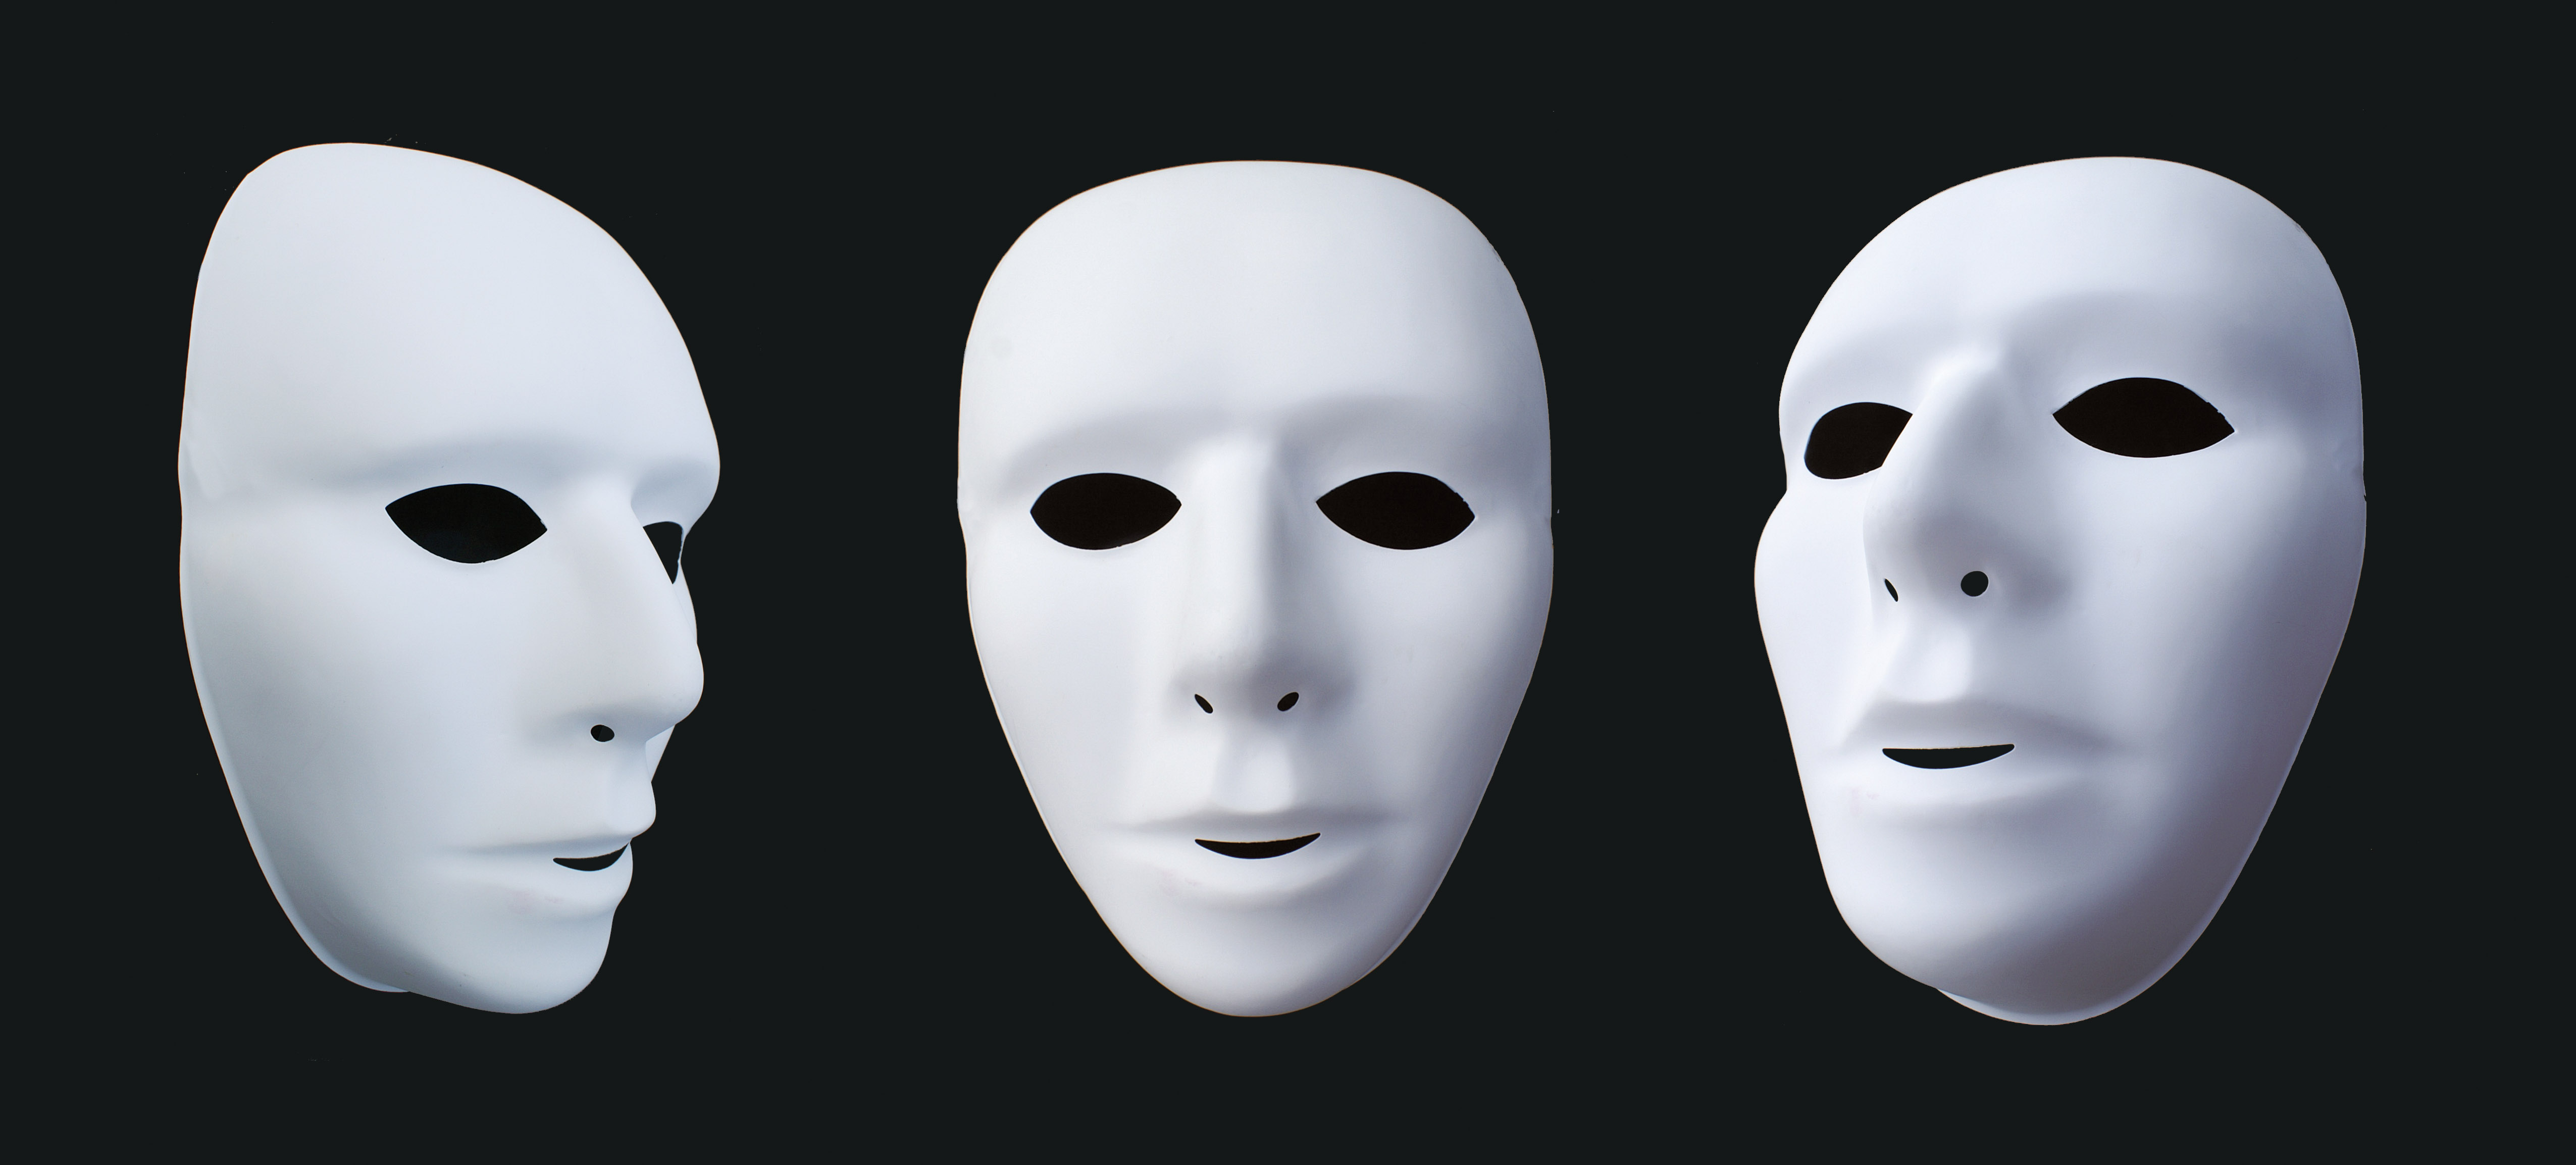 Man Learns That Mask On His Face Does Not Cover His Entire